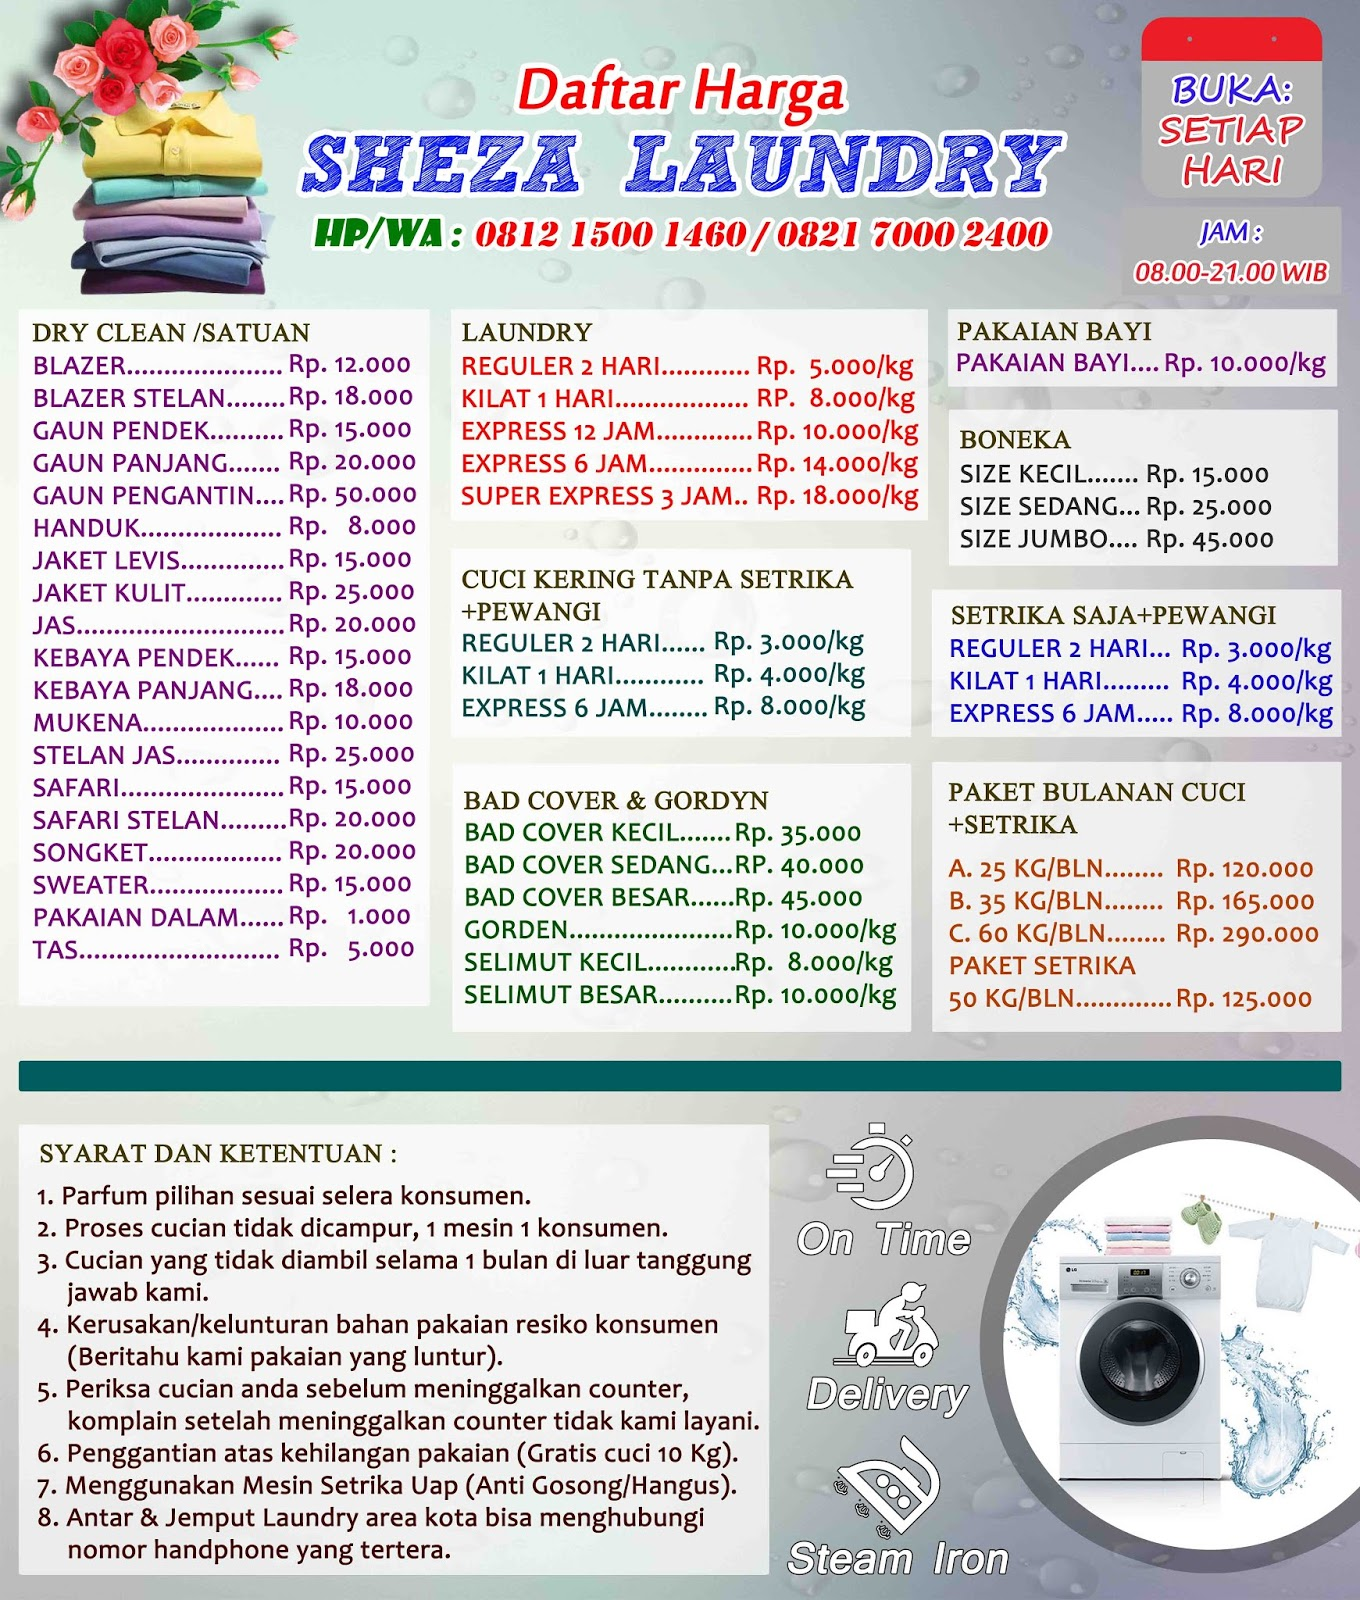 Contoh Banner Laundry Cdr Best Banner Design 2018